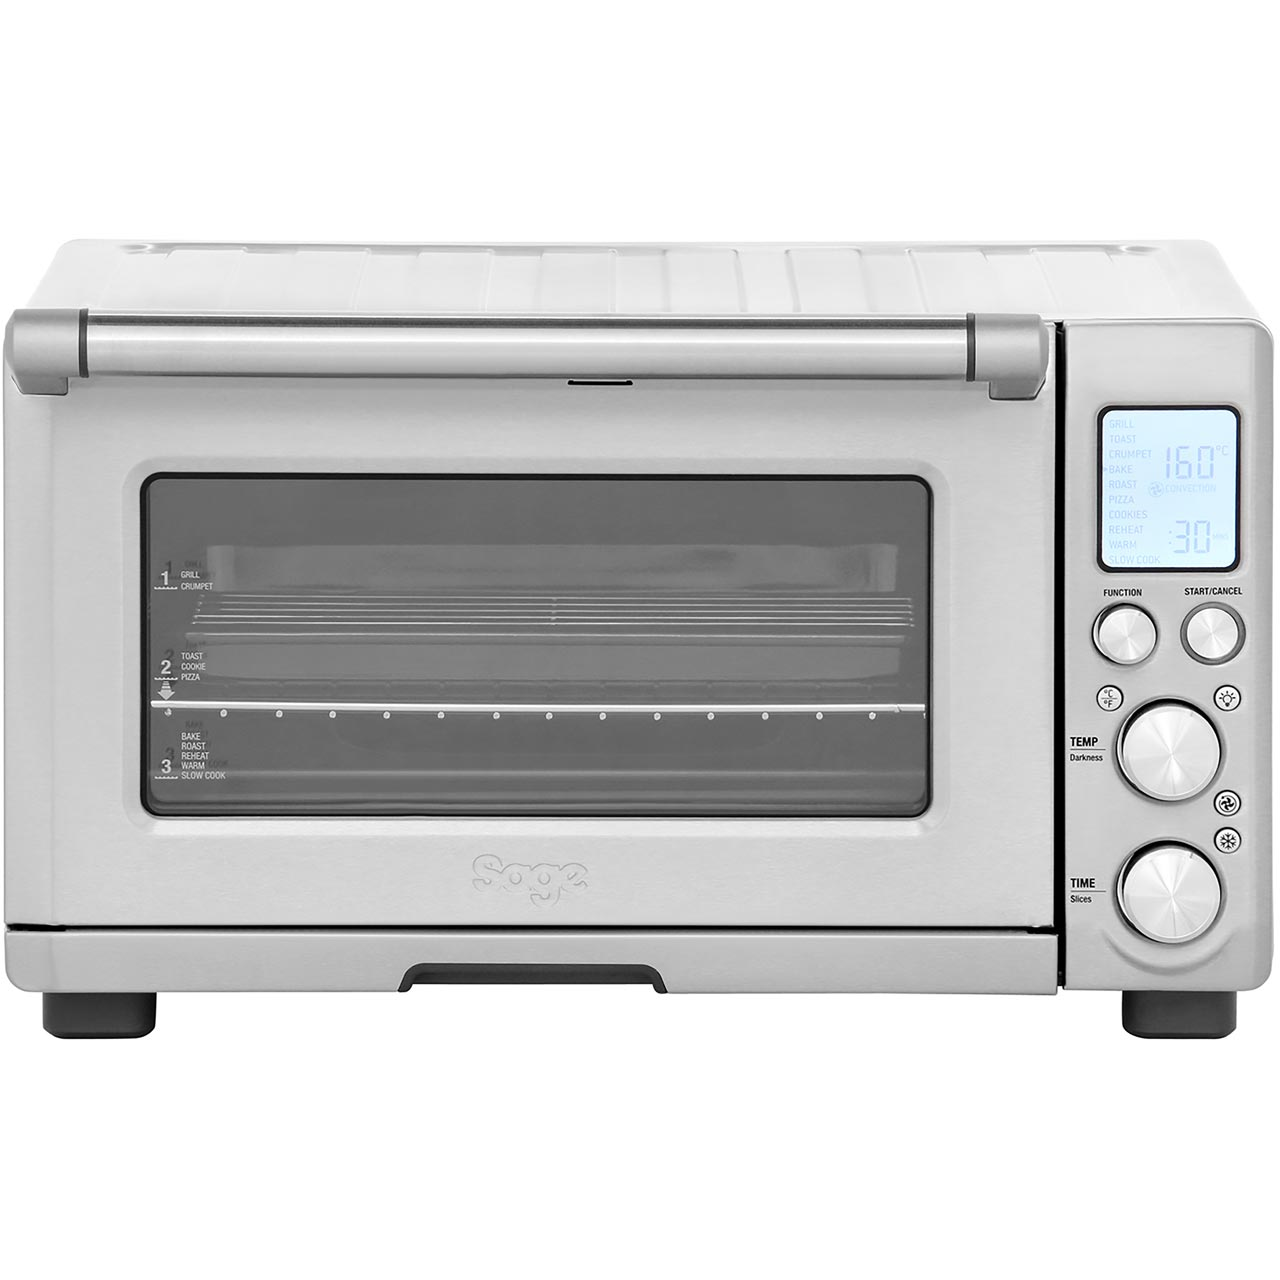 Sage The Smart Oven Pro Bov820bss Mini Oven Review